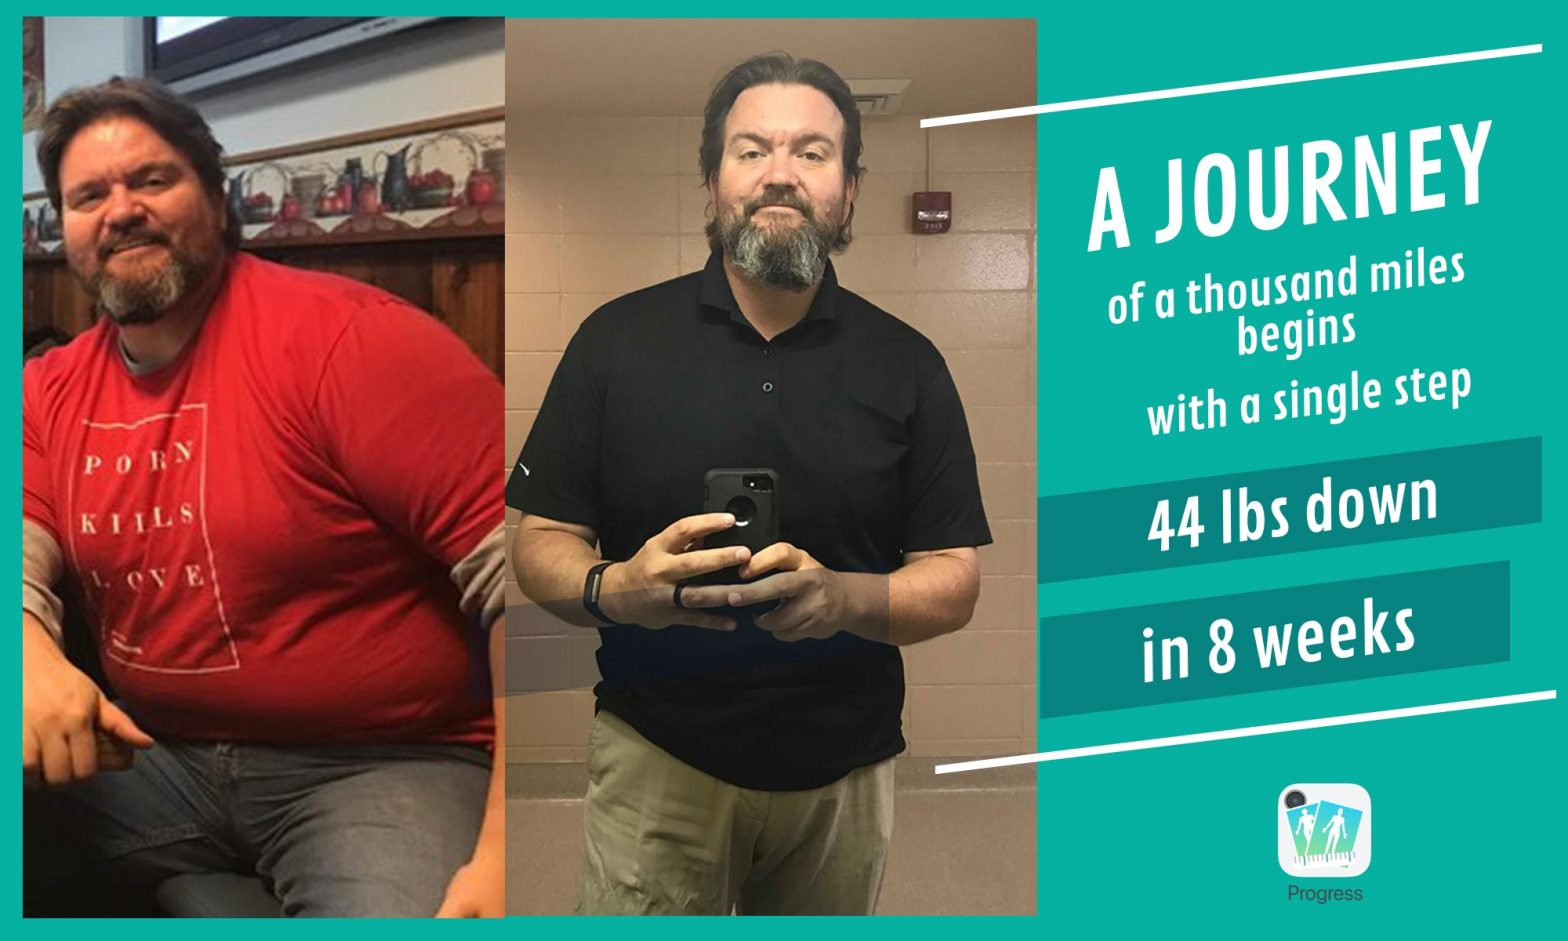 BJ before and after losing 44 lbs